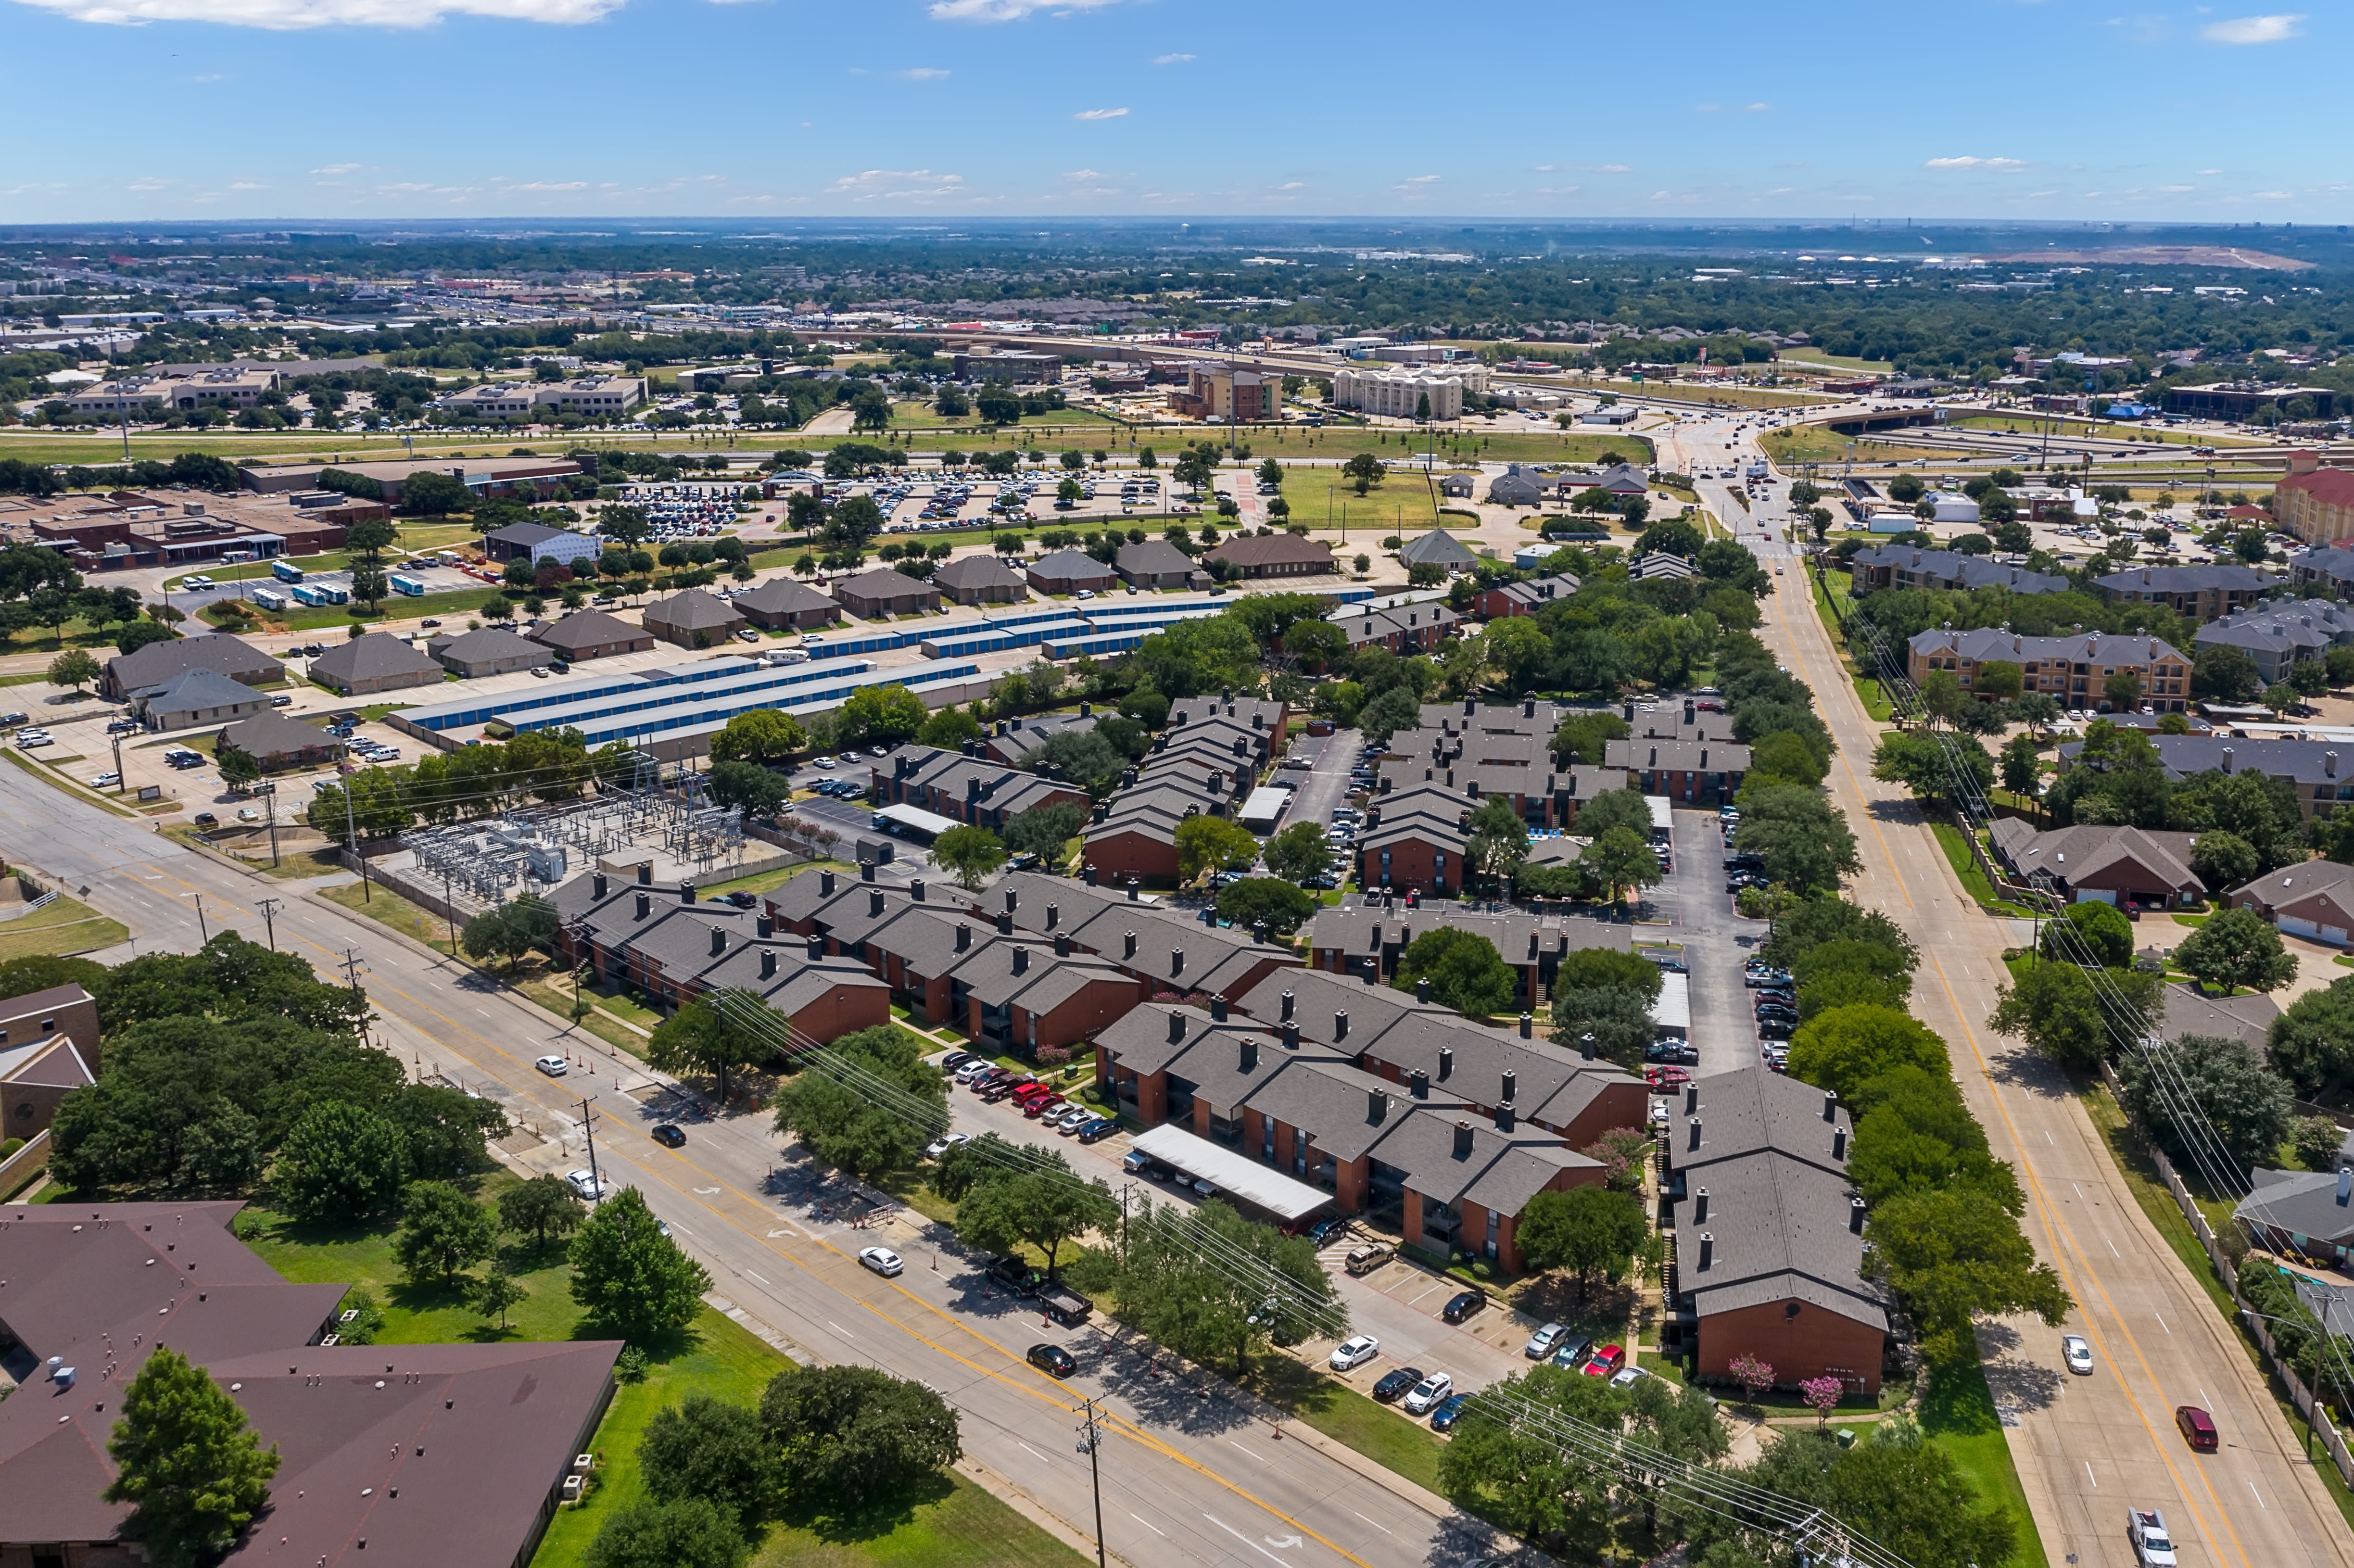 Aerial view of Windmill Terrace in Bedford, Texas